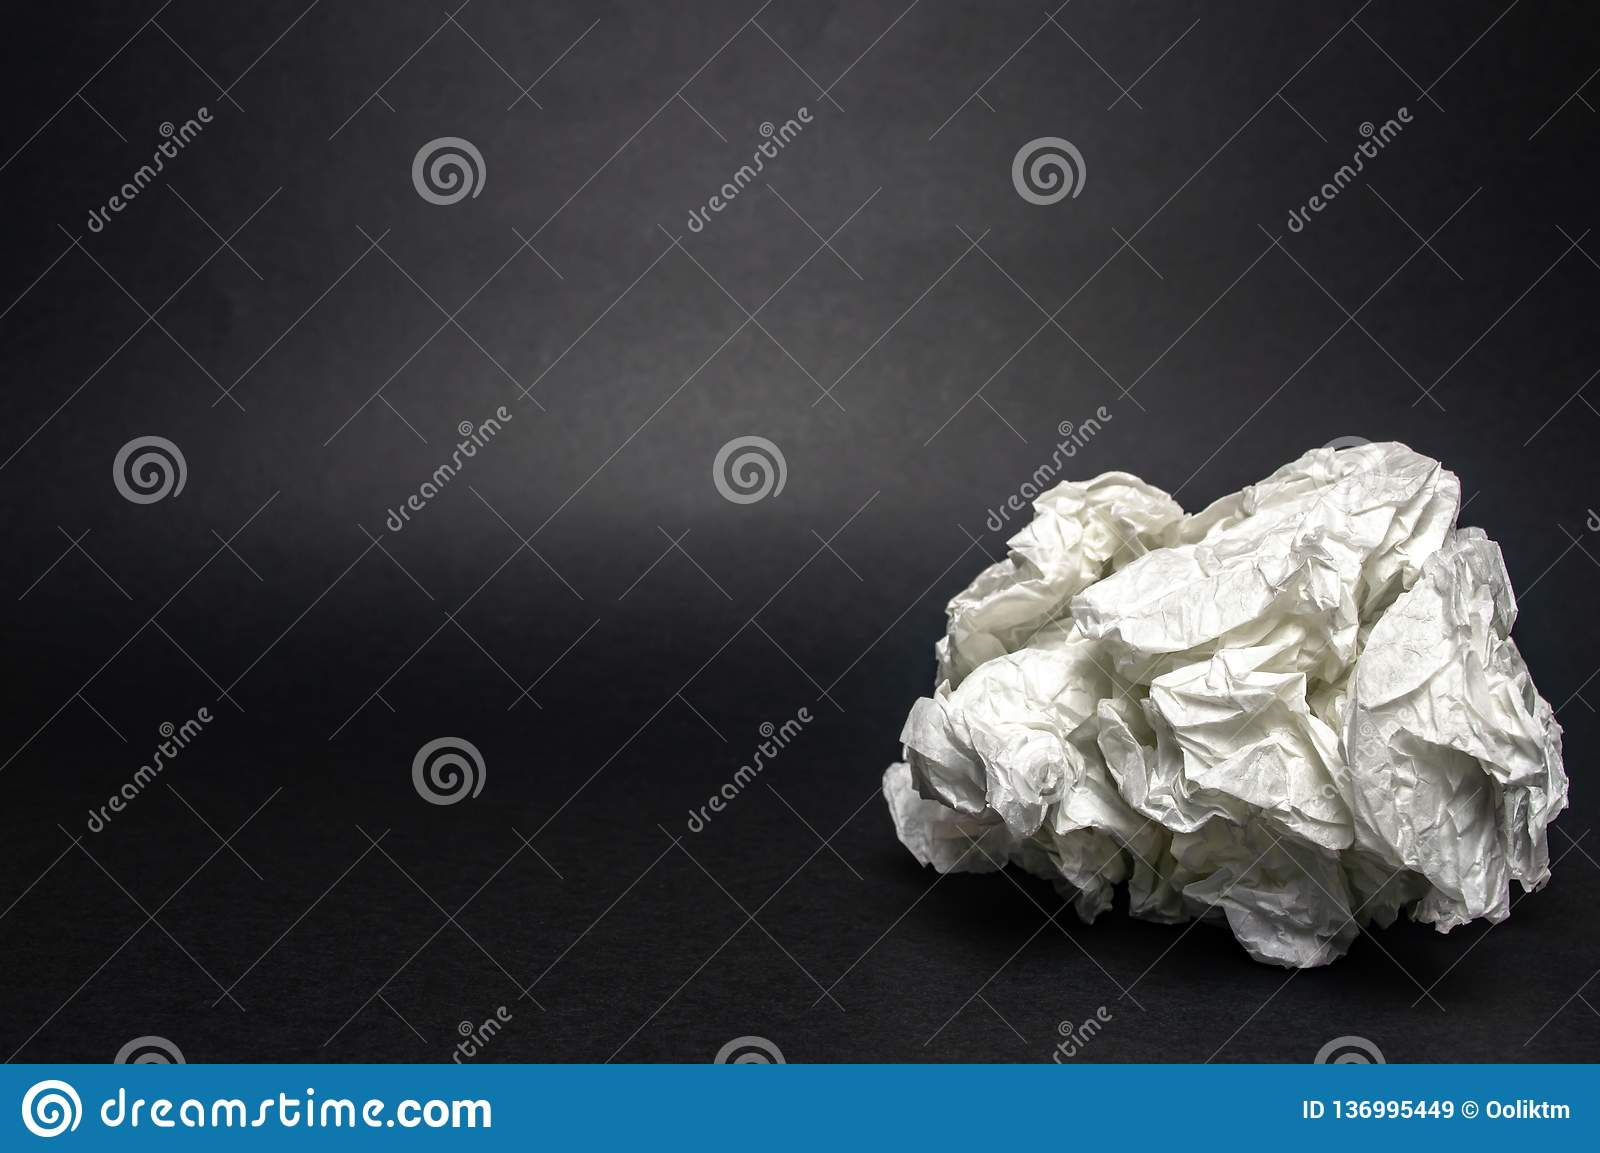 A piece of crumpled white paper on black closeup texture